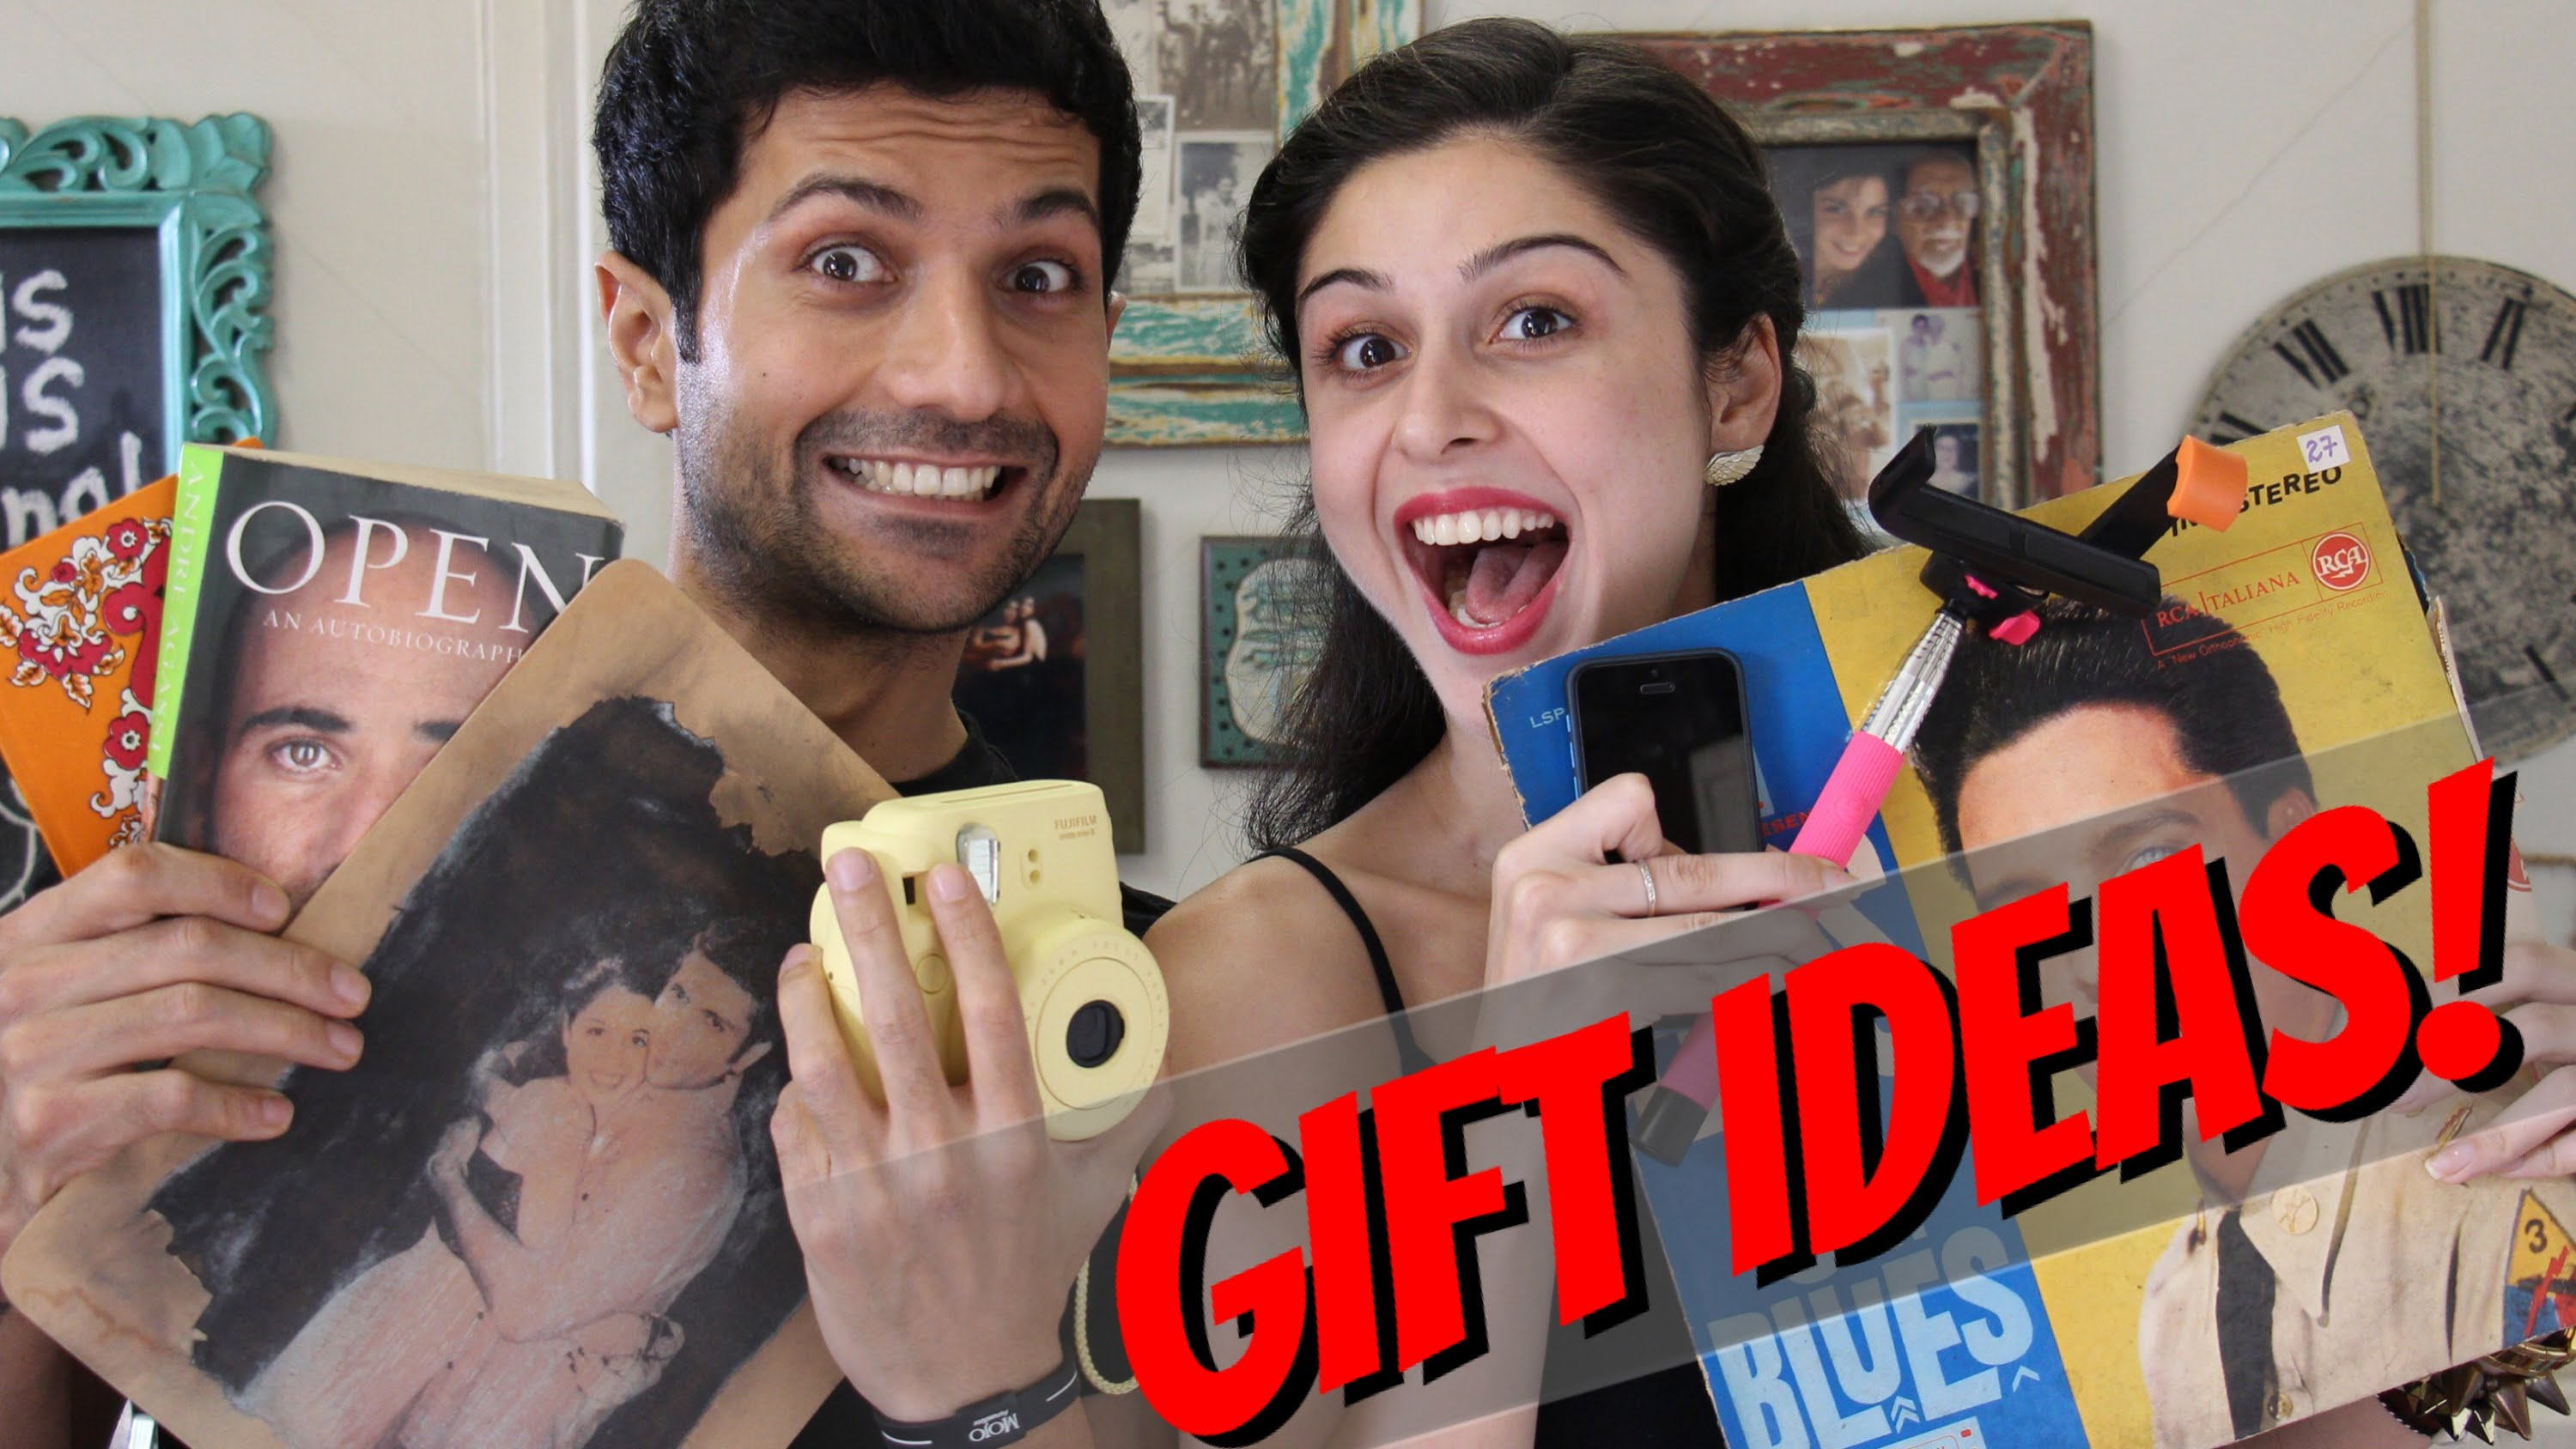 Coupling is a channel by Sherry and her better half Vaibhav, known for videos based on the fun moments they come across together in their daily lives.